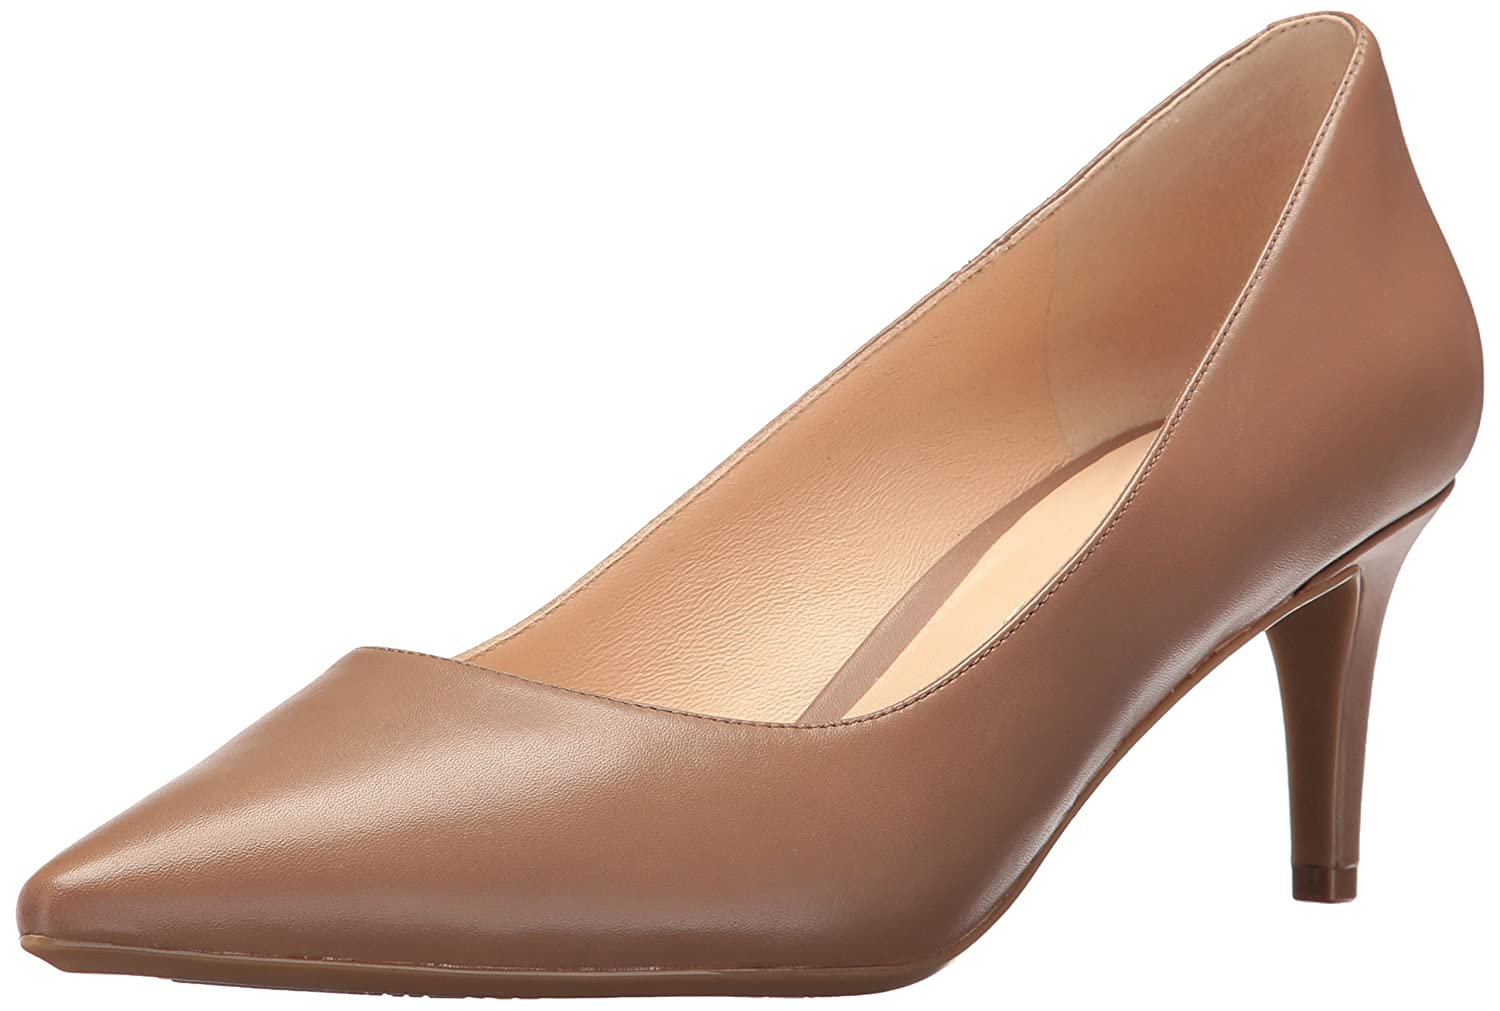 Nine West Women's SOHO9X9 Leather Pump B01MS9OVHB 9.5 B(M) US|Natural